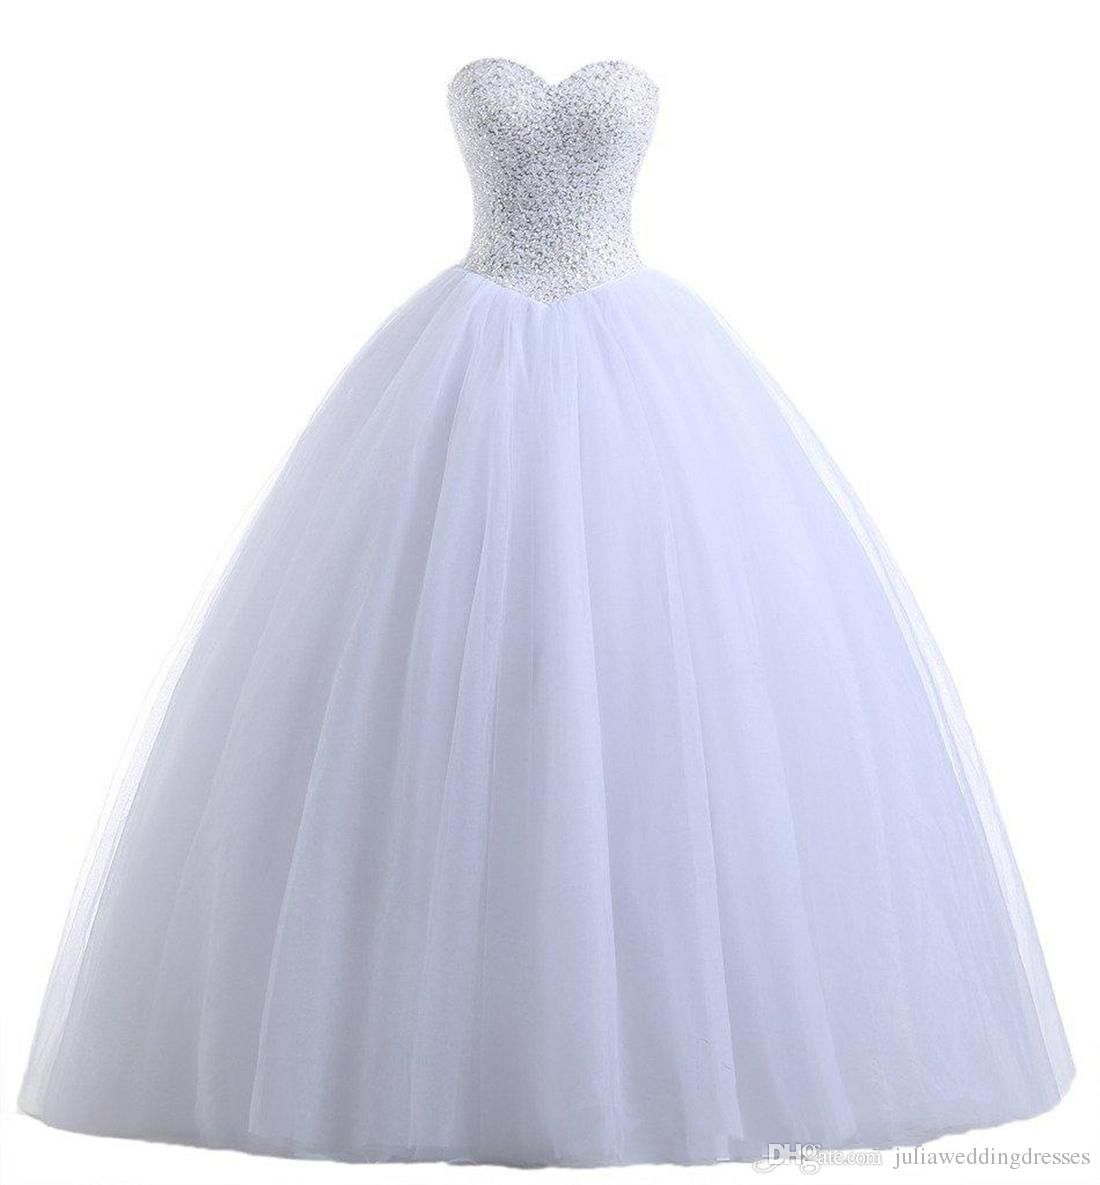 2018 Sexy Blanc Robe De Bal Quinceanera Robes Avec Perles Sweet 16 Robe Dentelle Up Floor Length Détachable Robe pour débutant QC113